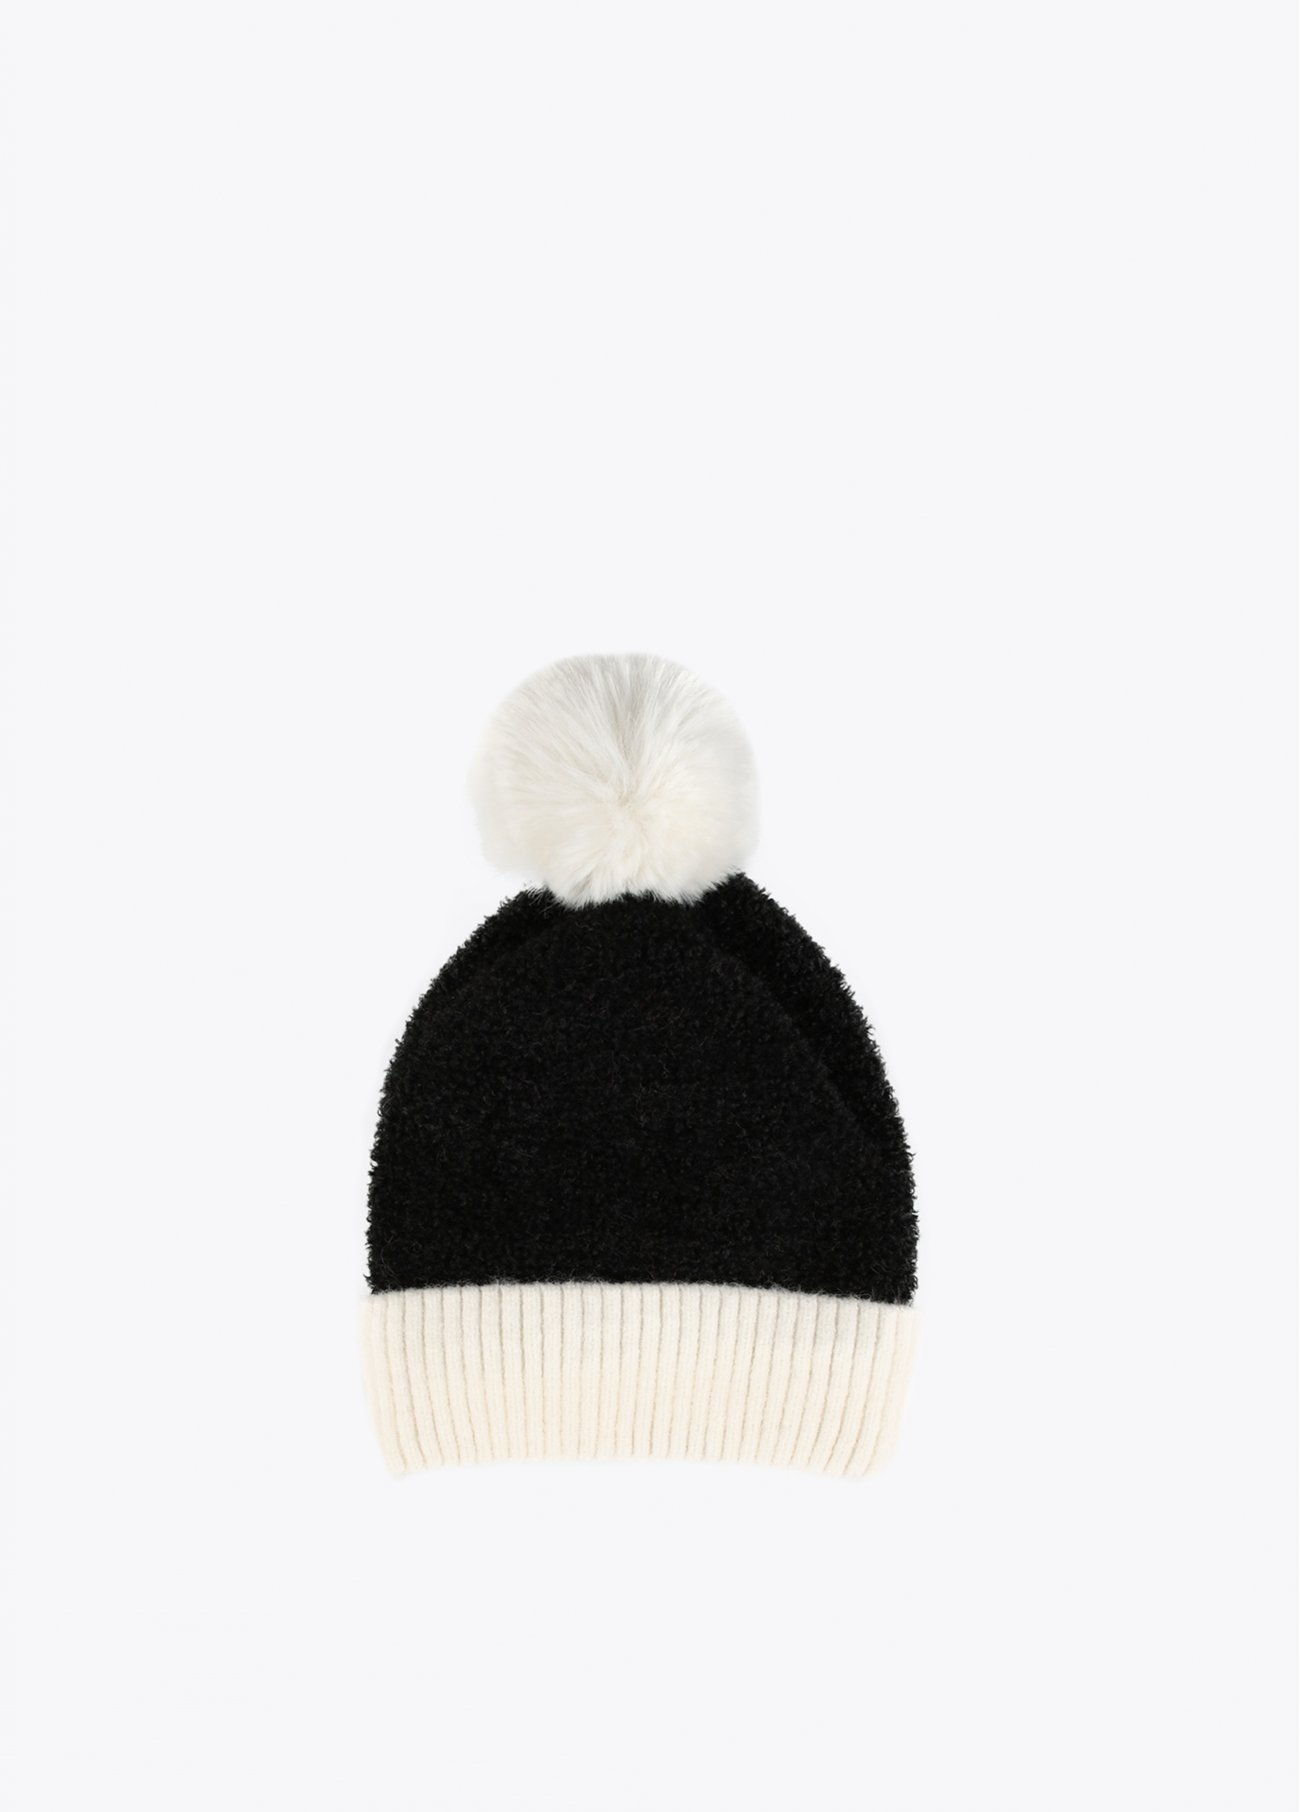 Two-tone hat with pompom